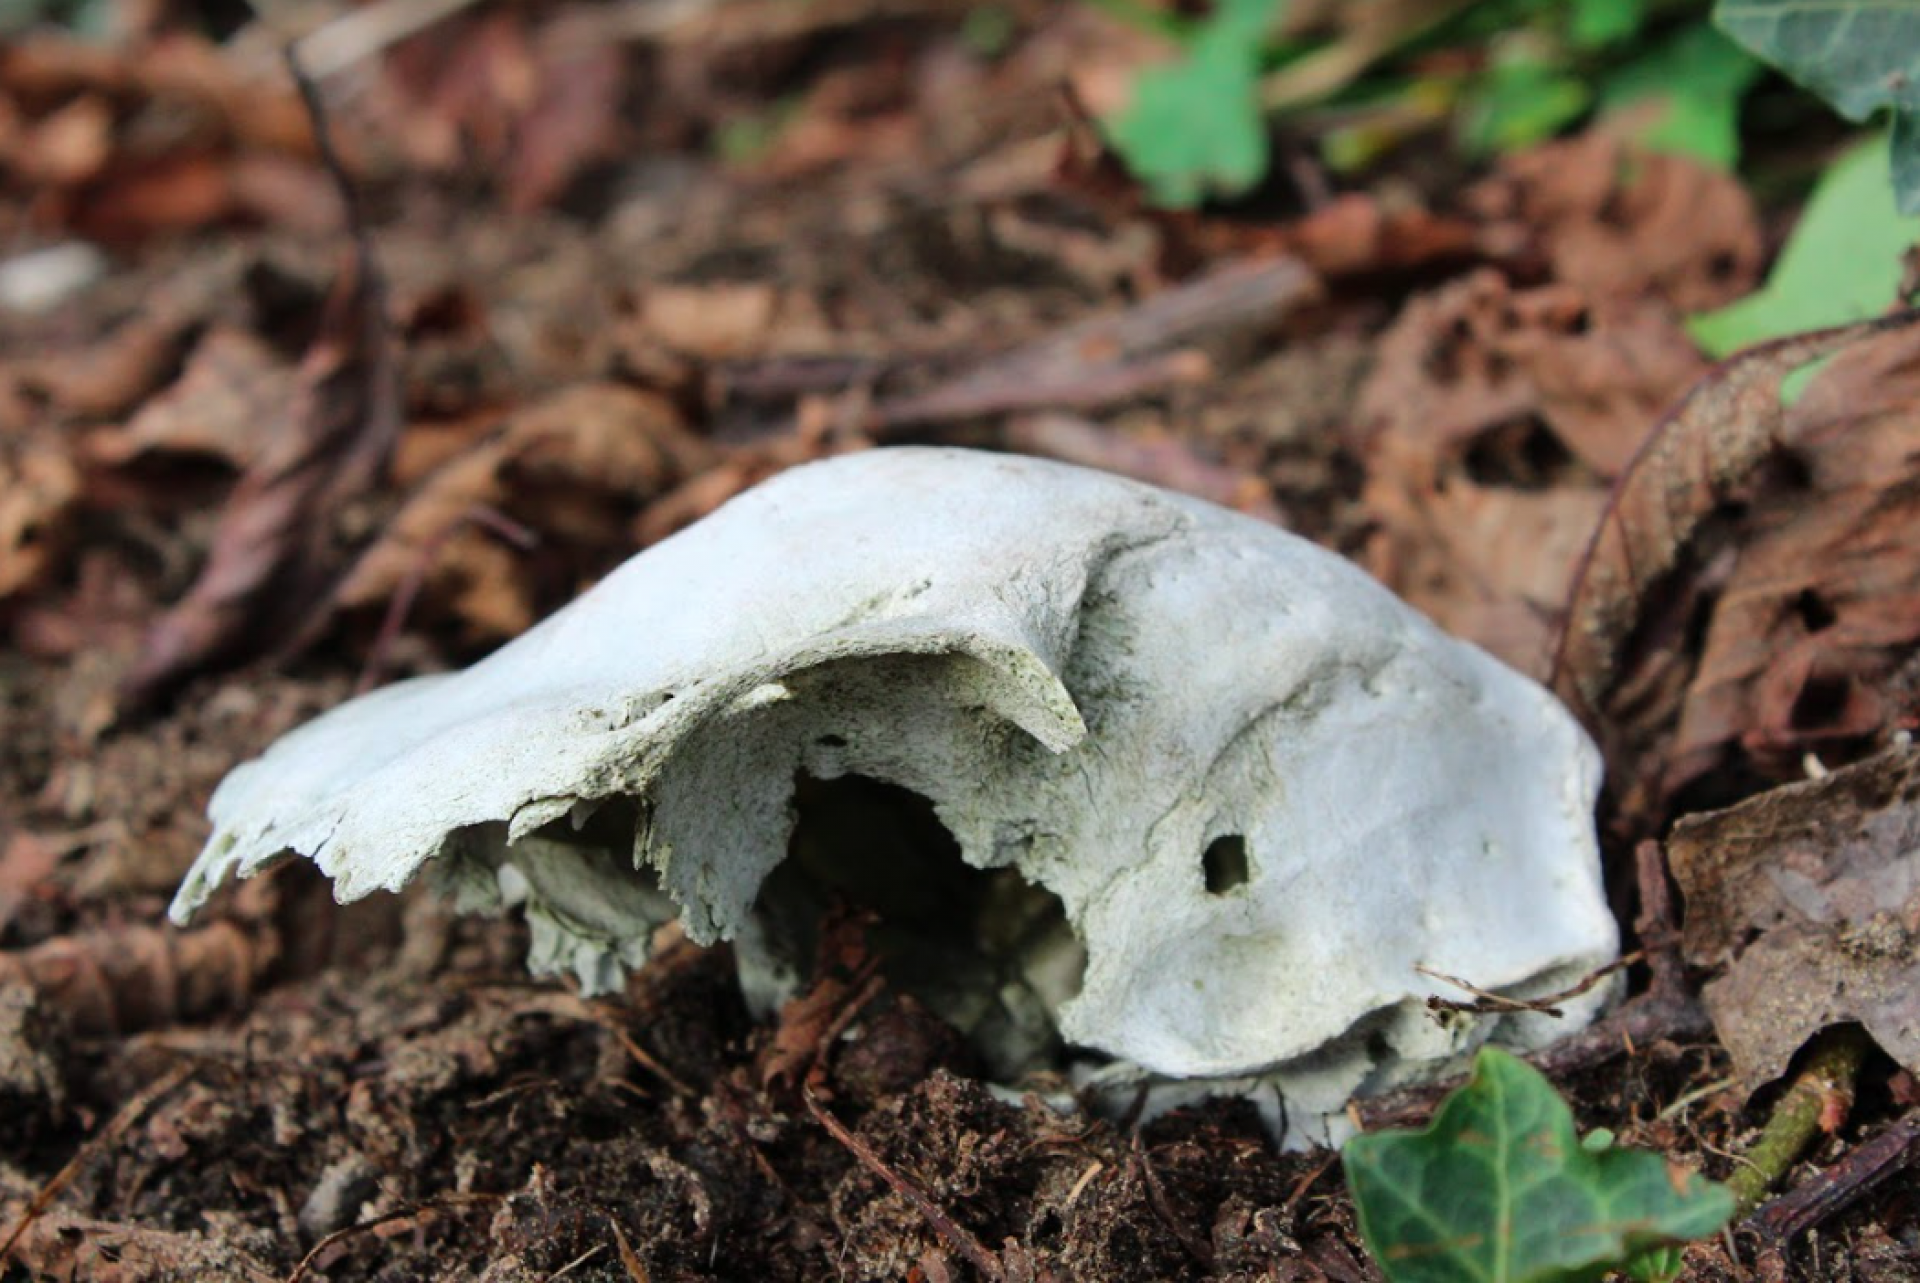 A partial mammal skull at Luffenholtz Beach County Park taken on Jan. 27. Photo by Kyle Orr.